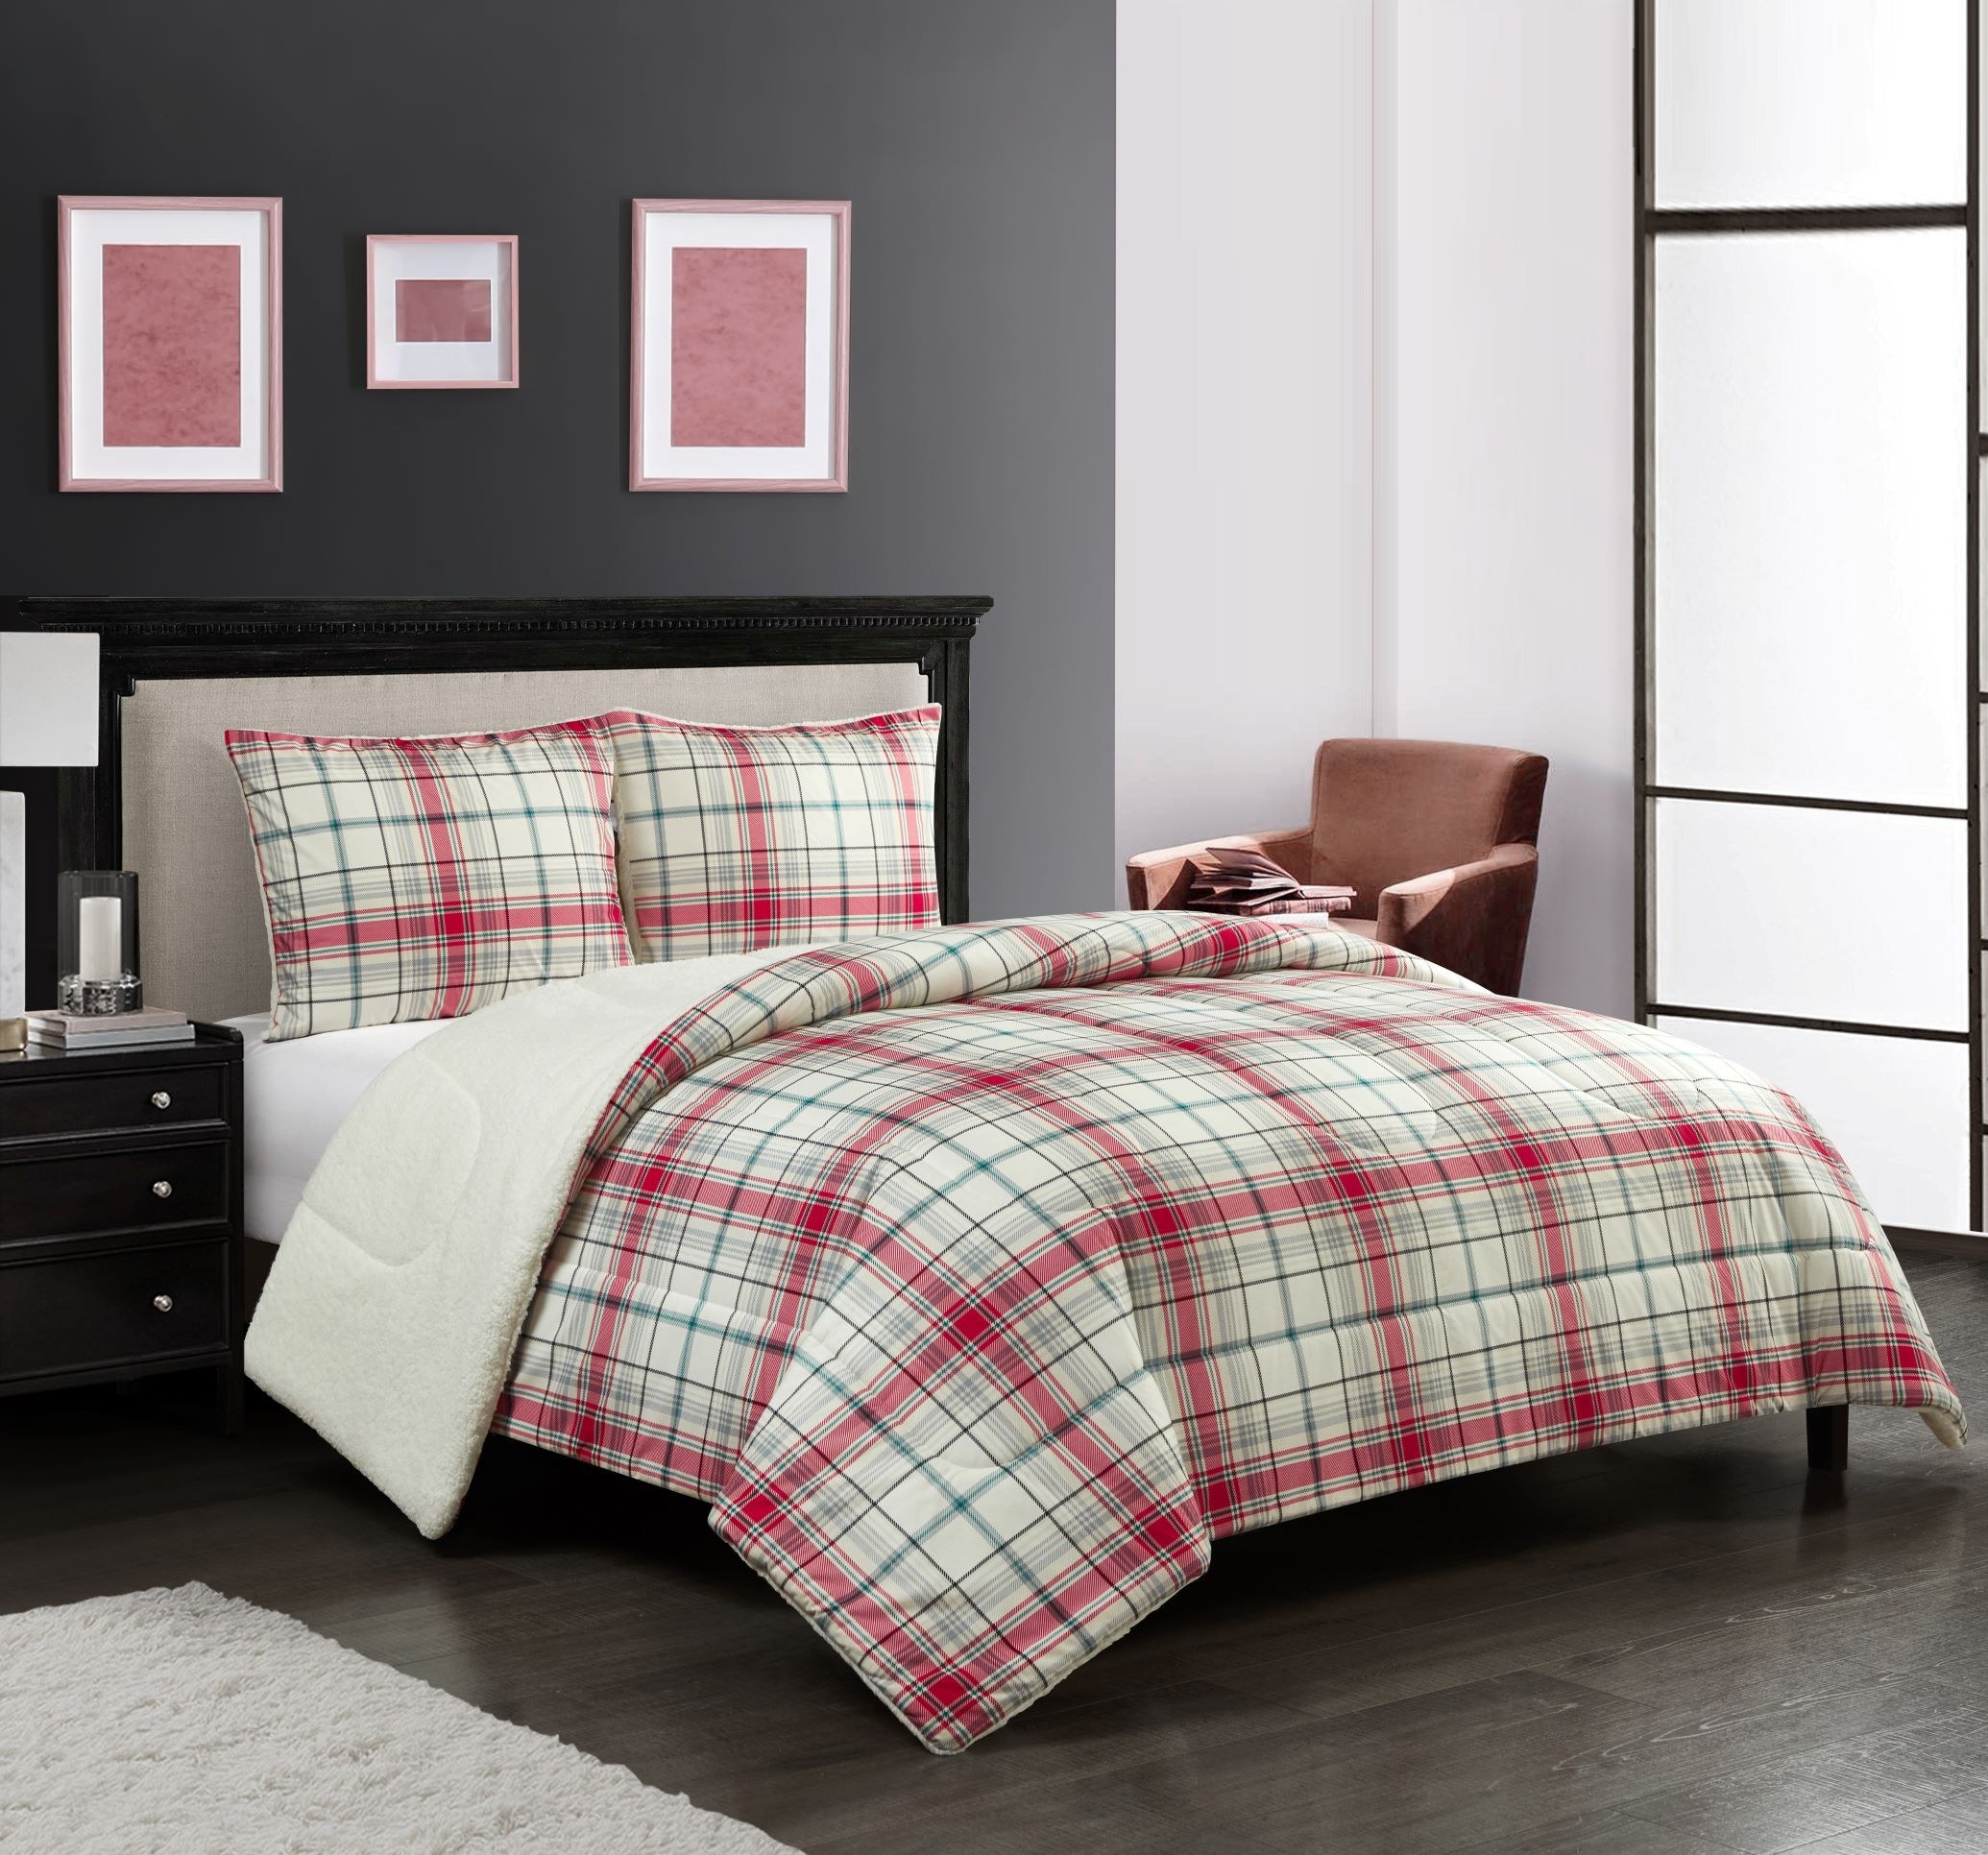 The sheet set on a queen bed